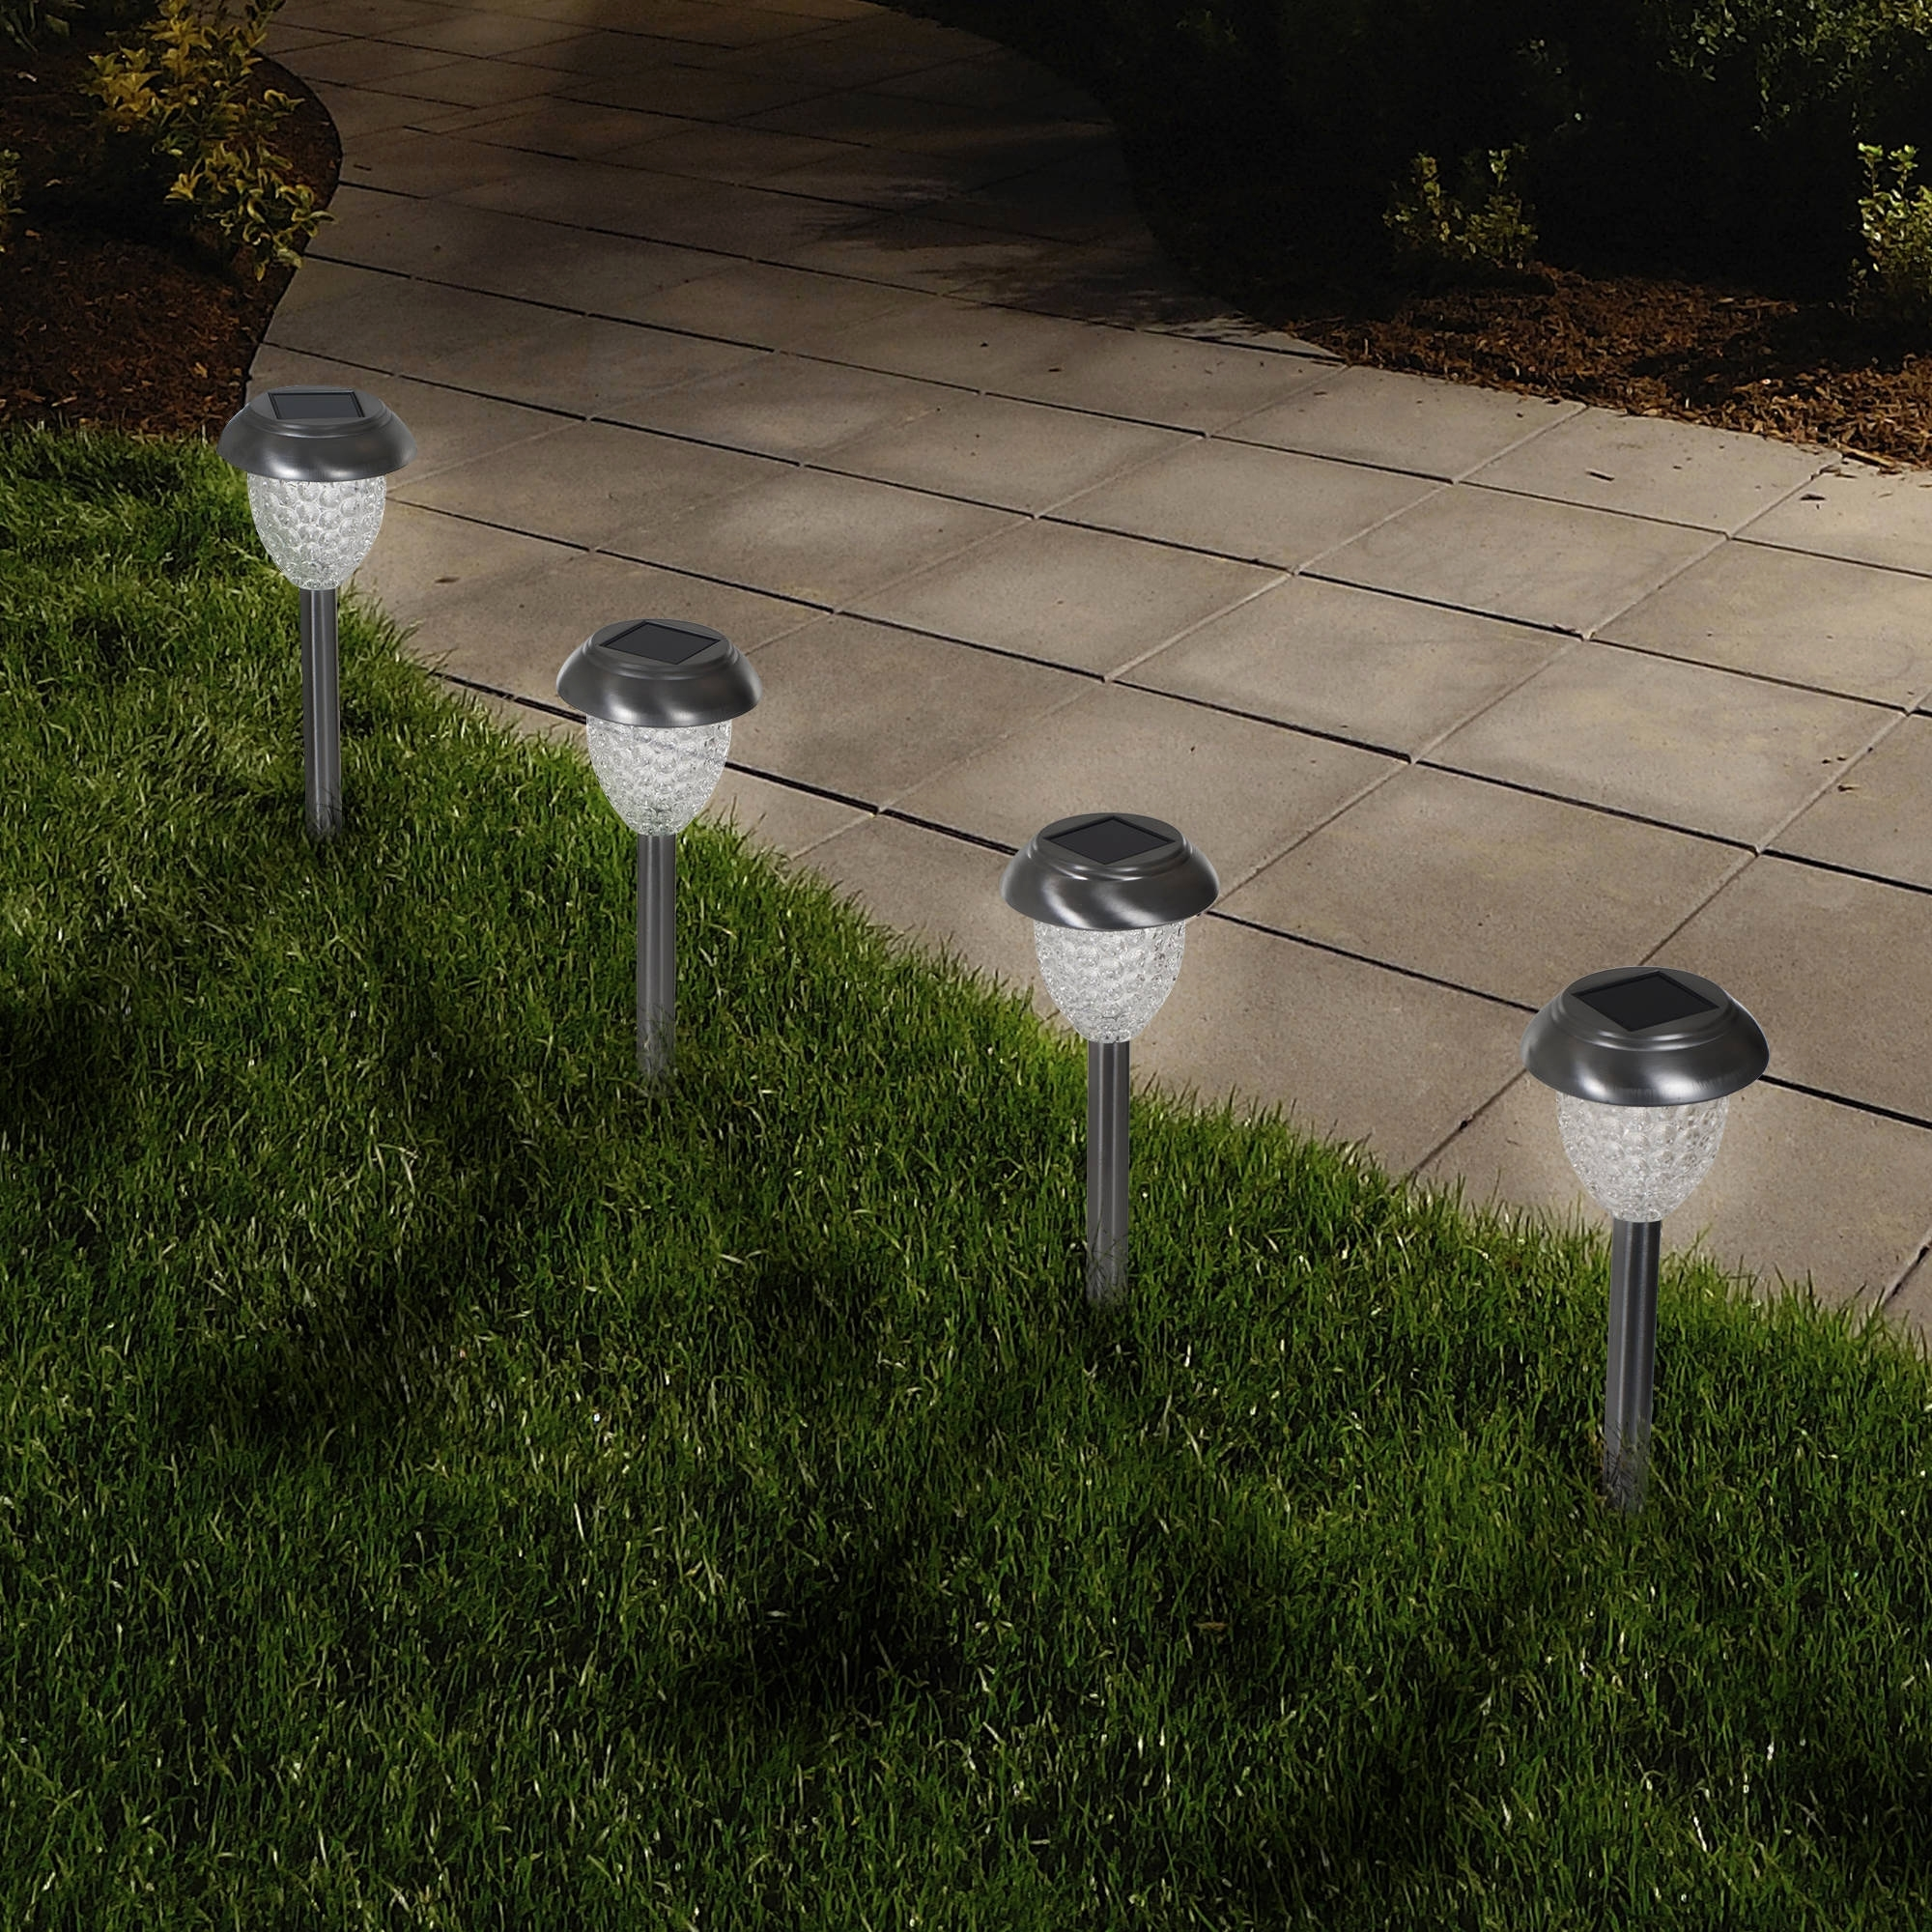 Electric Outdoor Lighting Garden Intended For Popular Electric Outdoor Lighting Garden Lovely Landscape Lighting Grand (View 9 of 20)